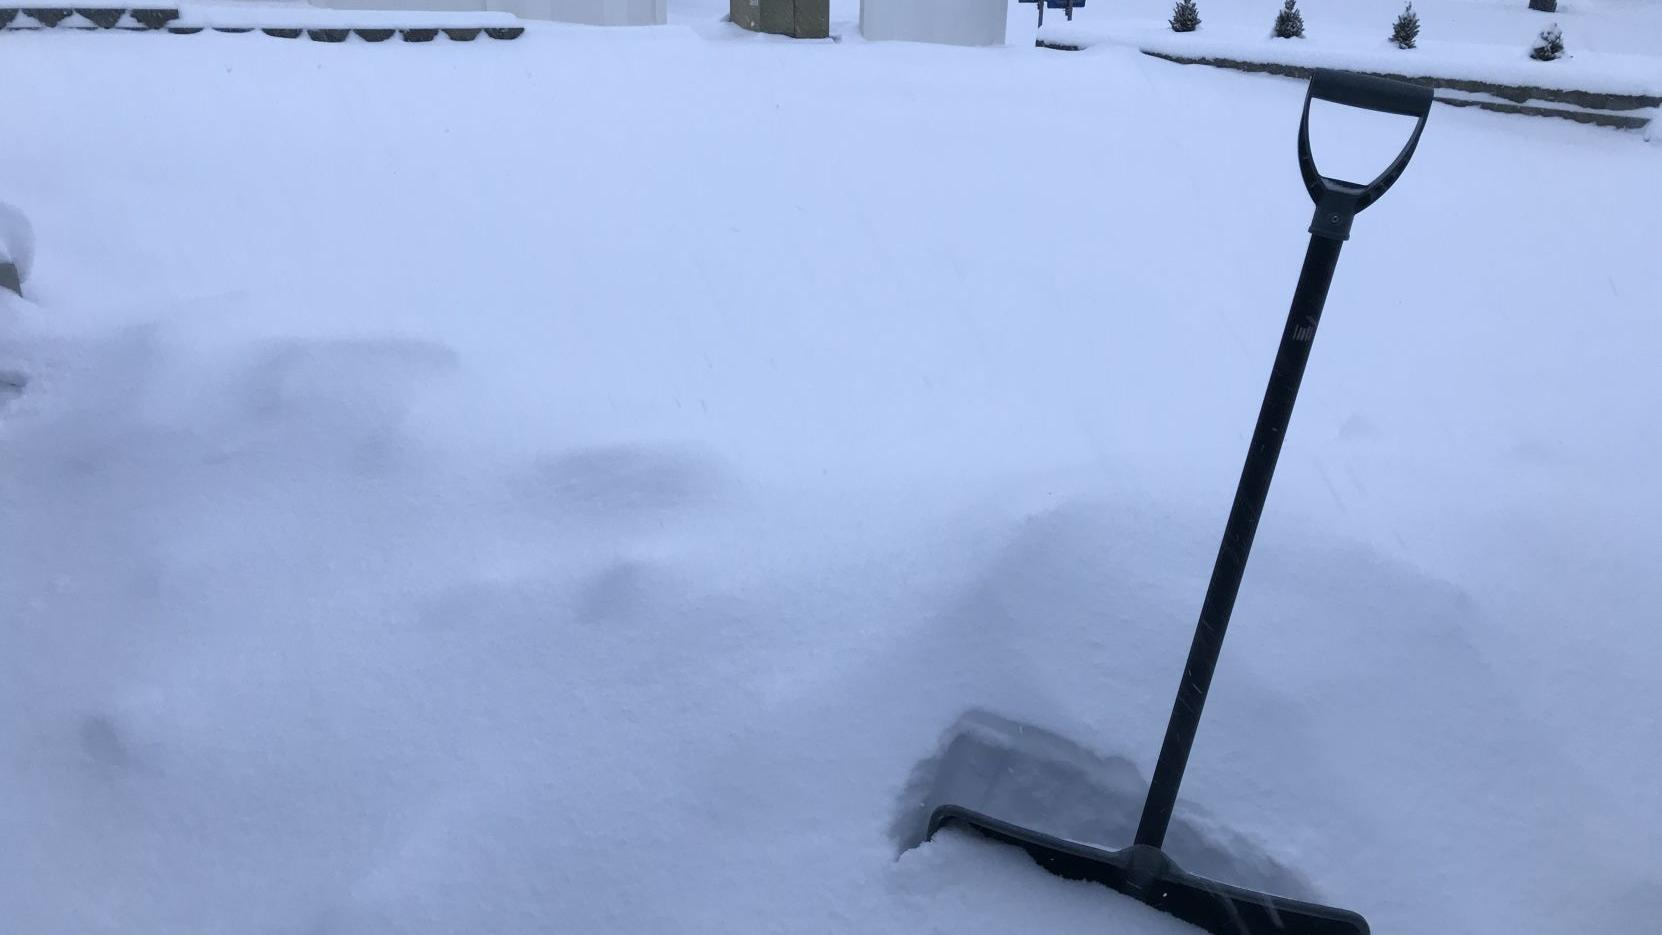 Yakima declares state of emergency due to snow, wind; storm knocks out power